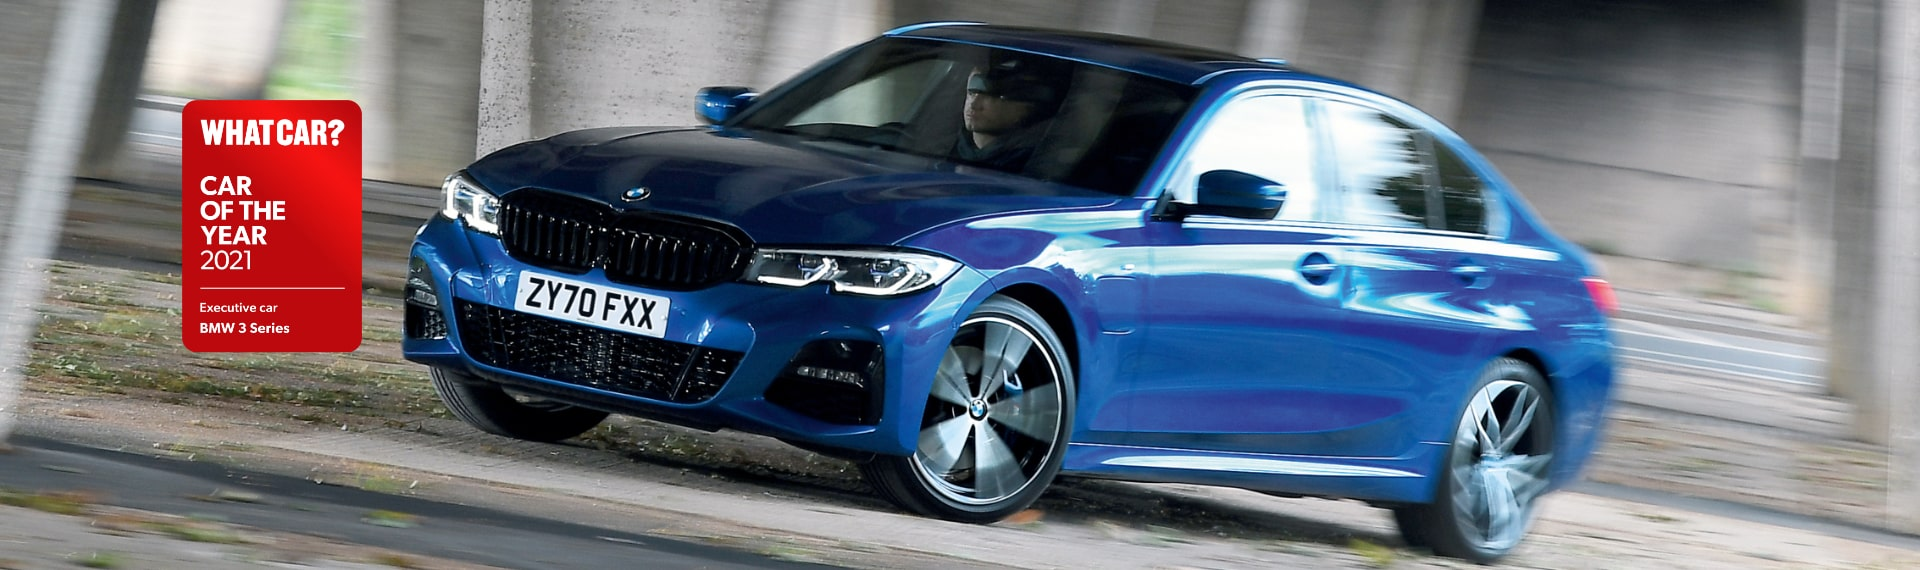 BMW 3 Series - What Car? Executive Car of the Year